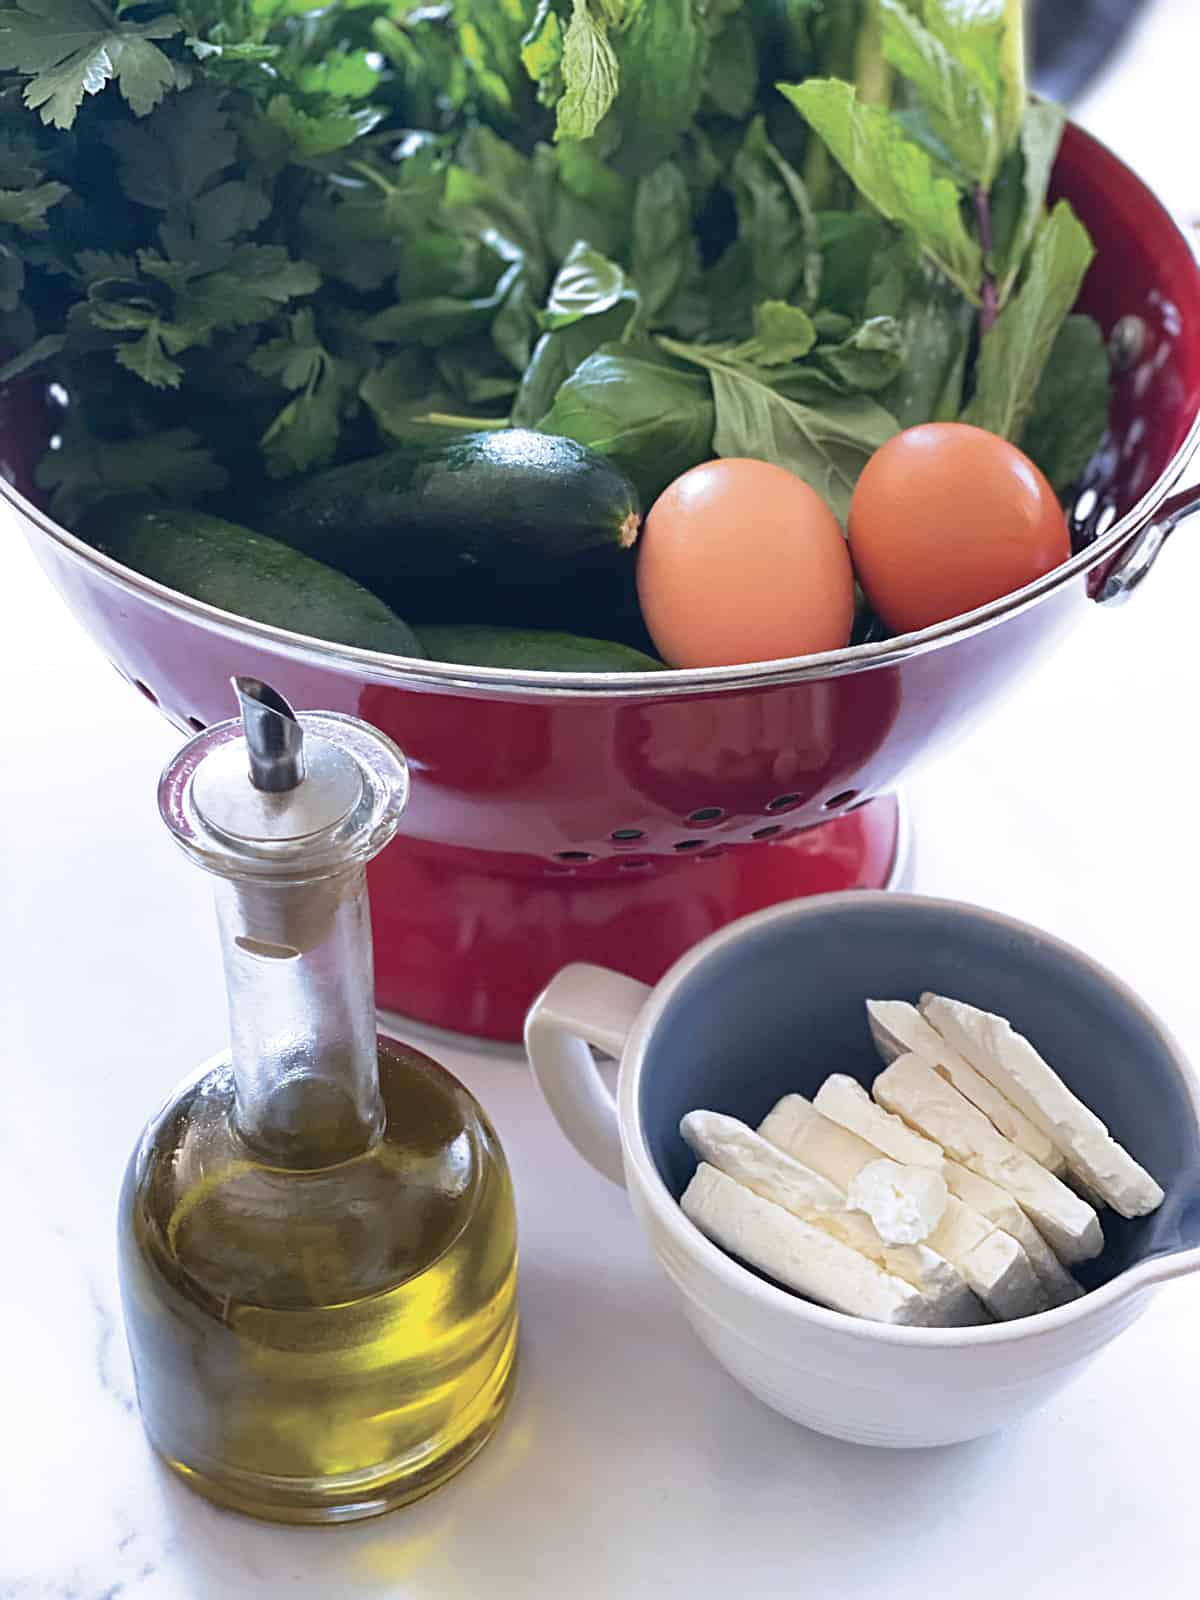 Fresh herbs, zucchini eggs and scallions in a red colander. In front, a glass bottle with olive oil and a cup with feta cheese.